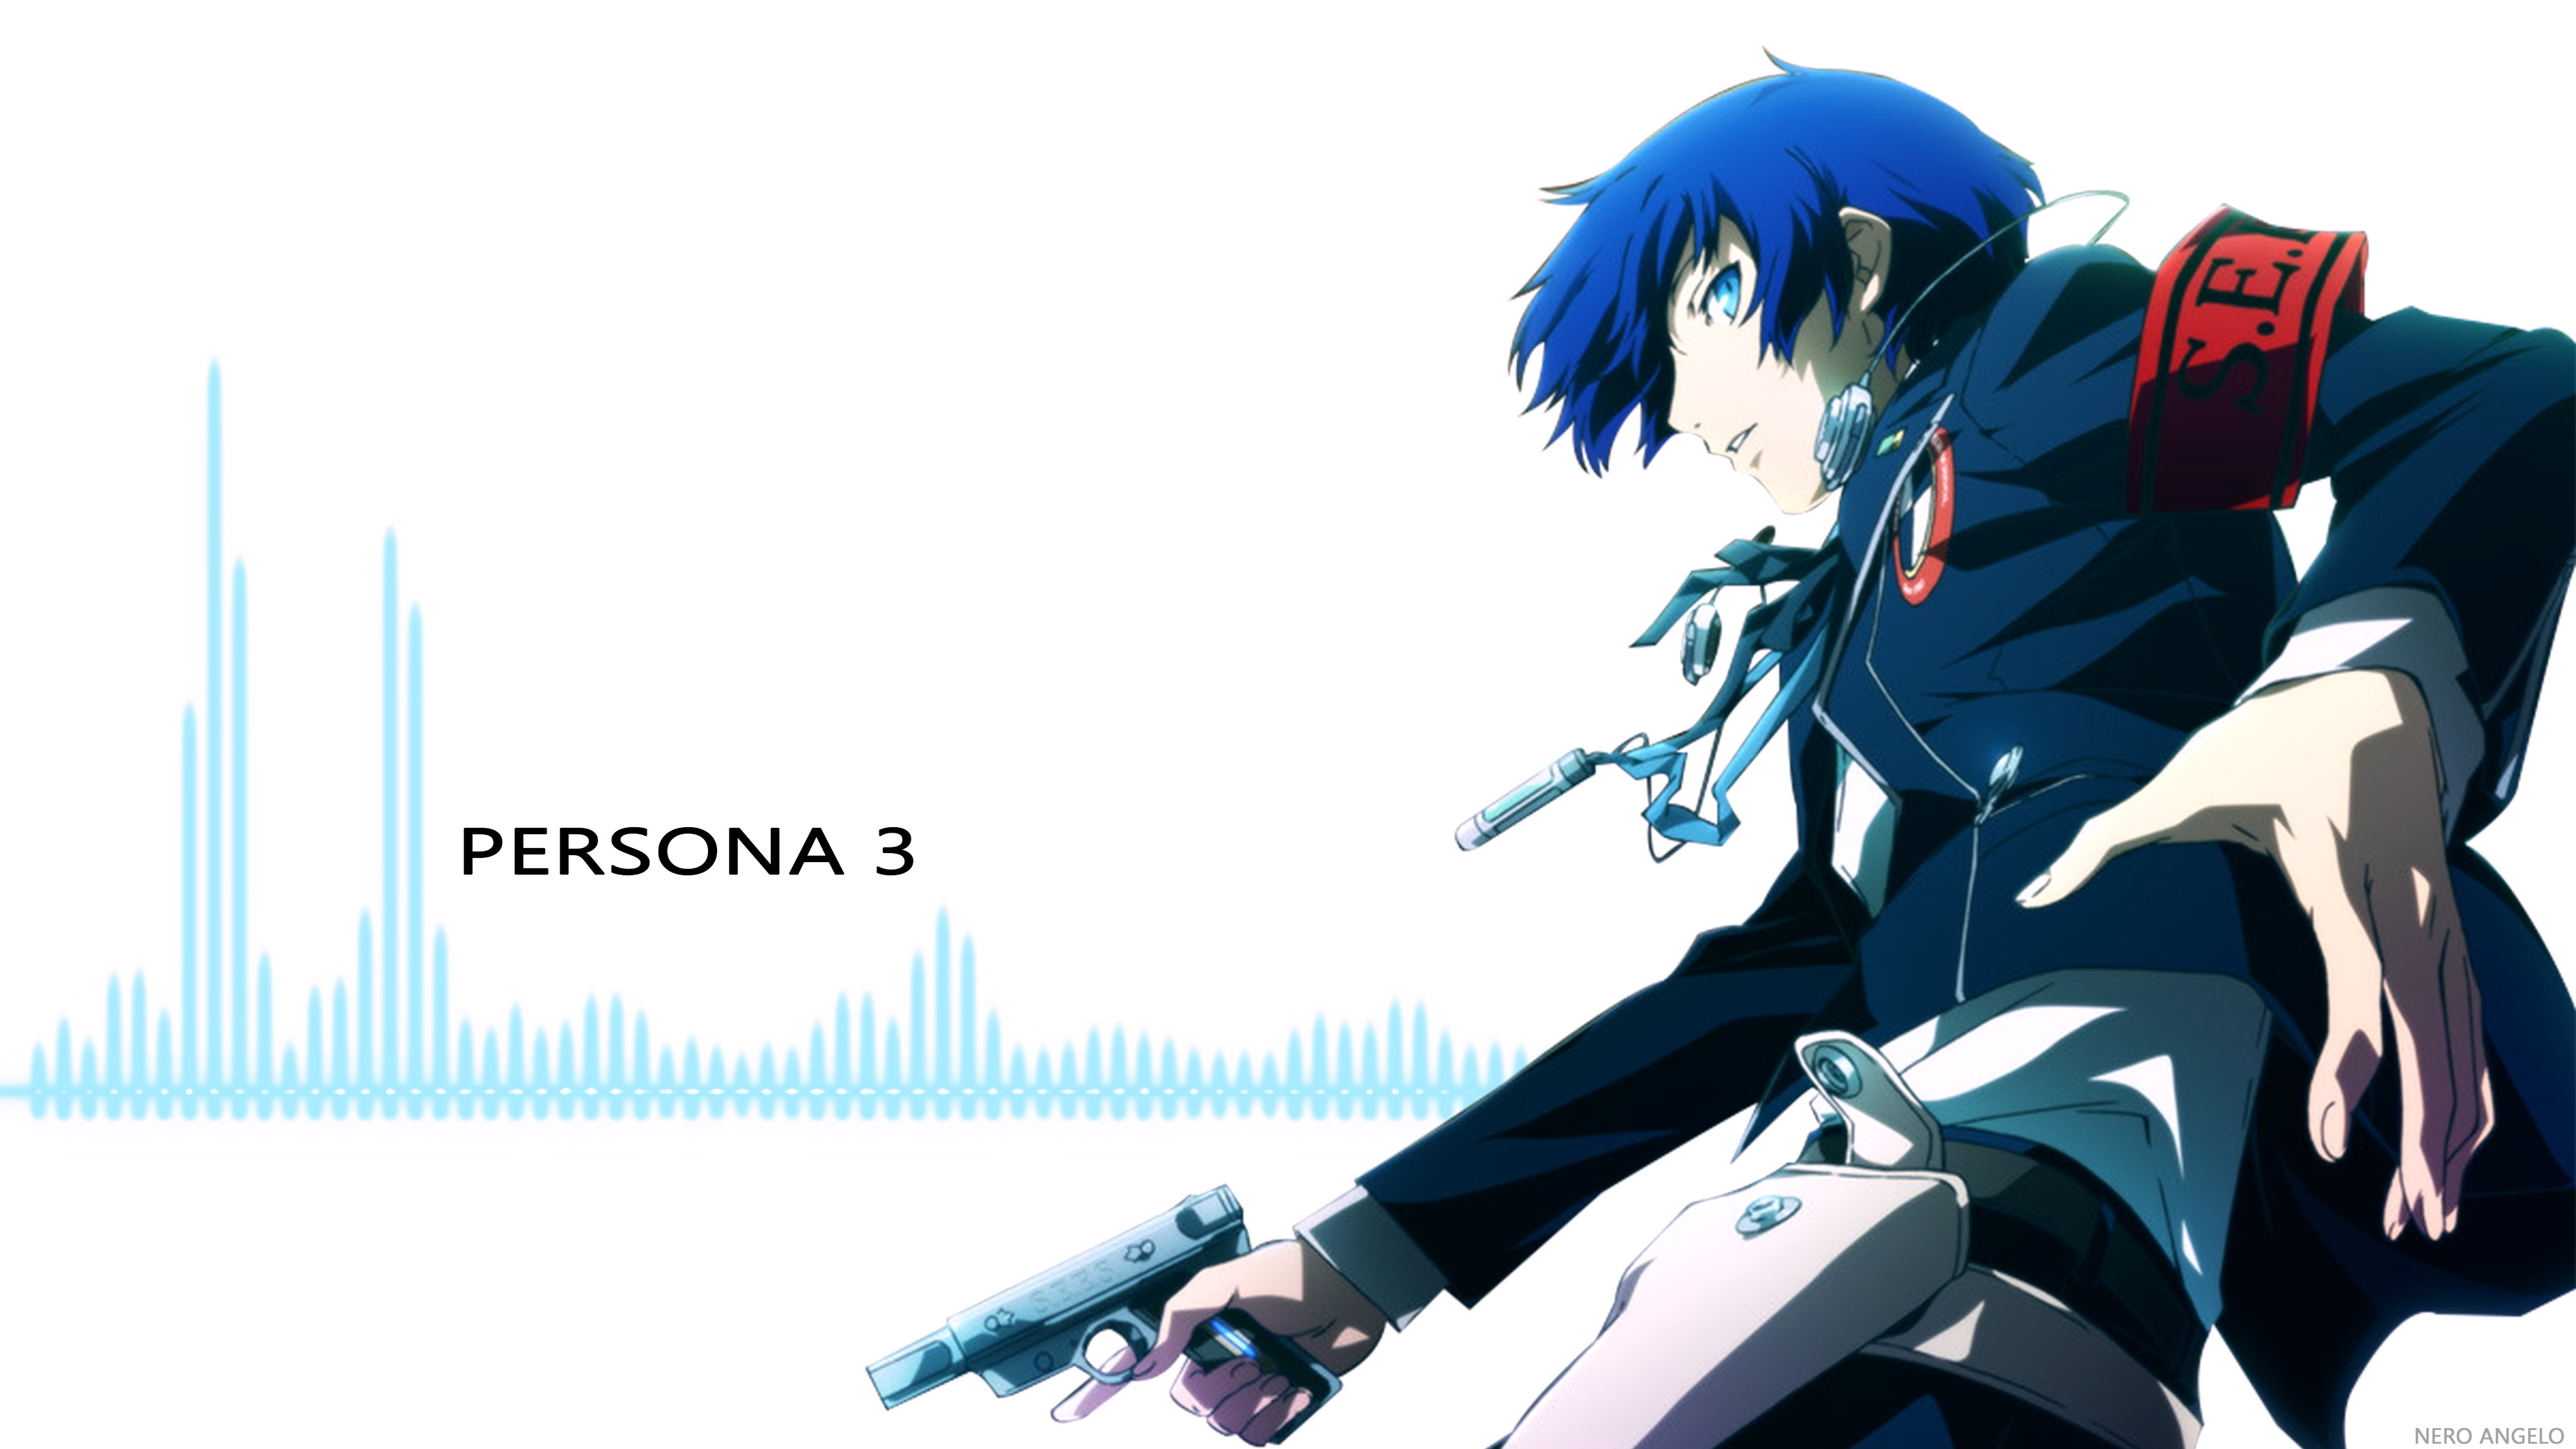 persona 3 the movie 1 wallpaper full hd wallpaper and background